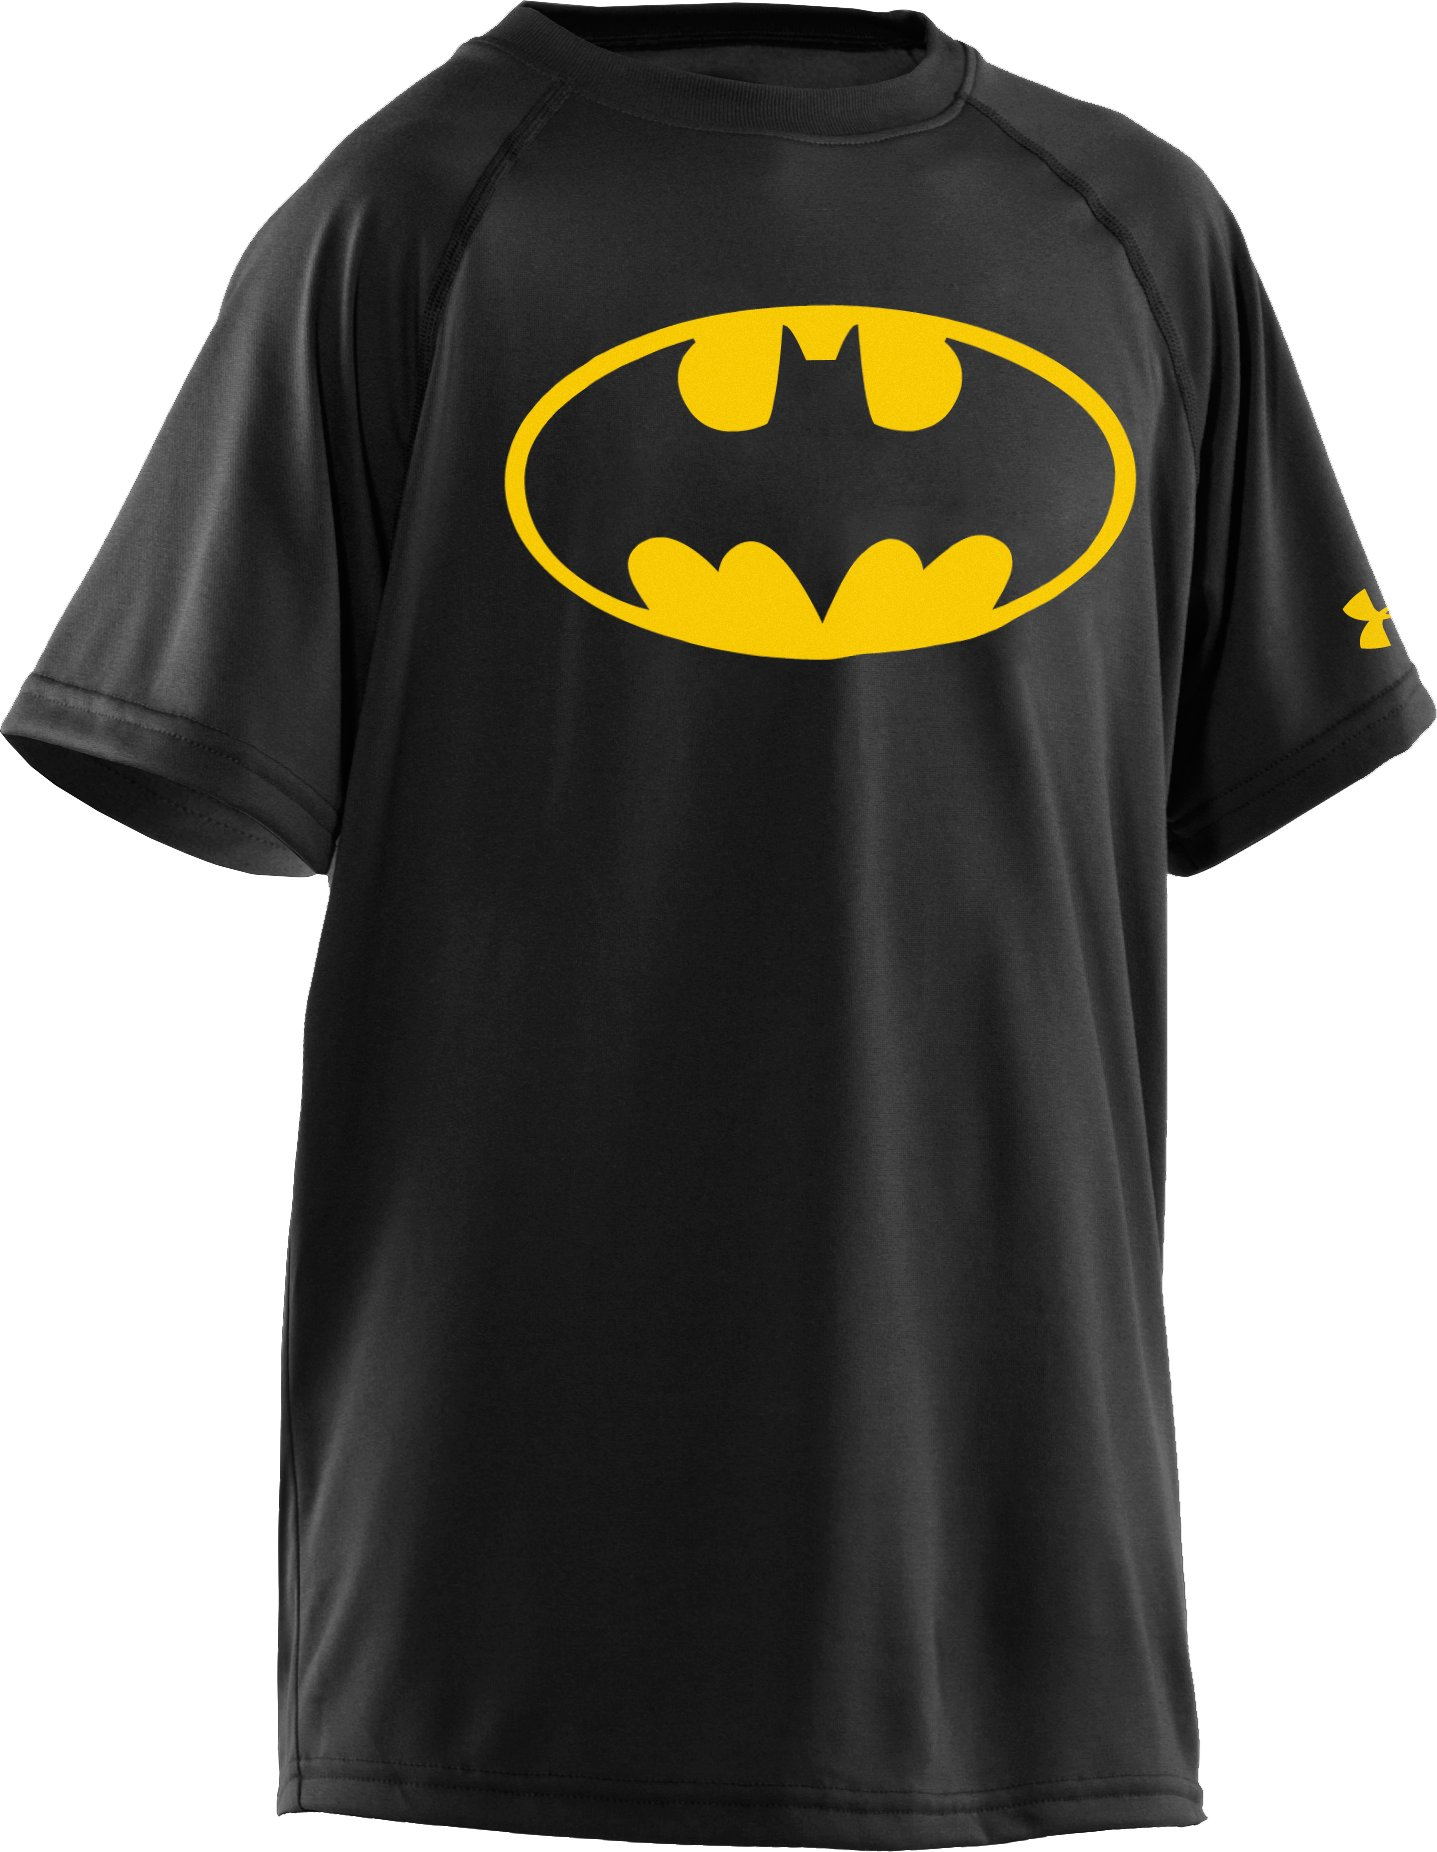 Boys' Under Armour® Alter Ego Batman T-Shirt, Black